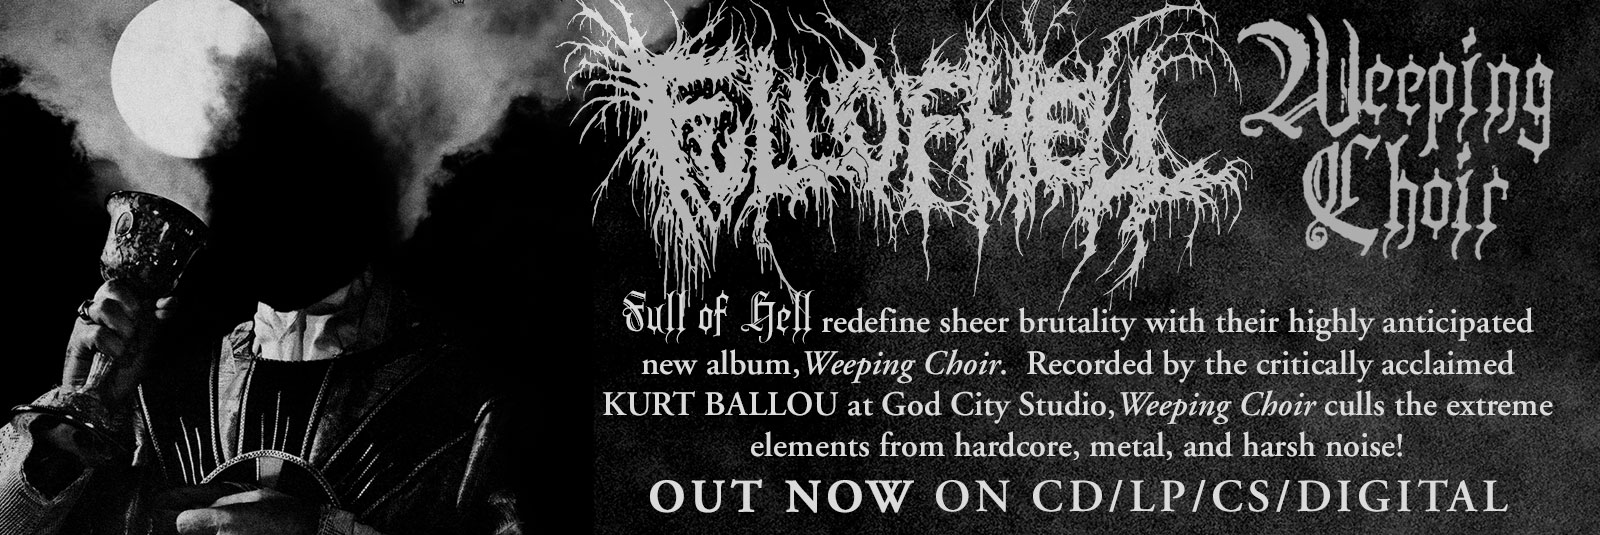 full-of-hell-weeping-choir-grindcore-extreme-metal-relapse-out-now